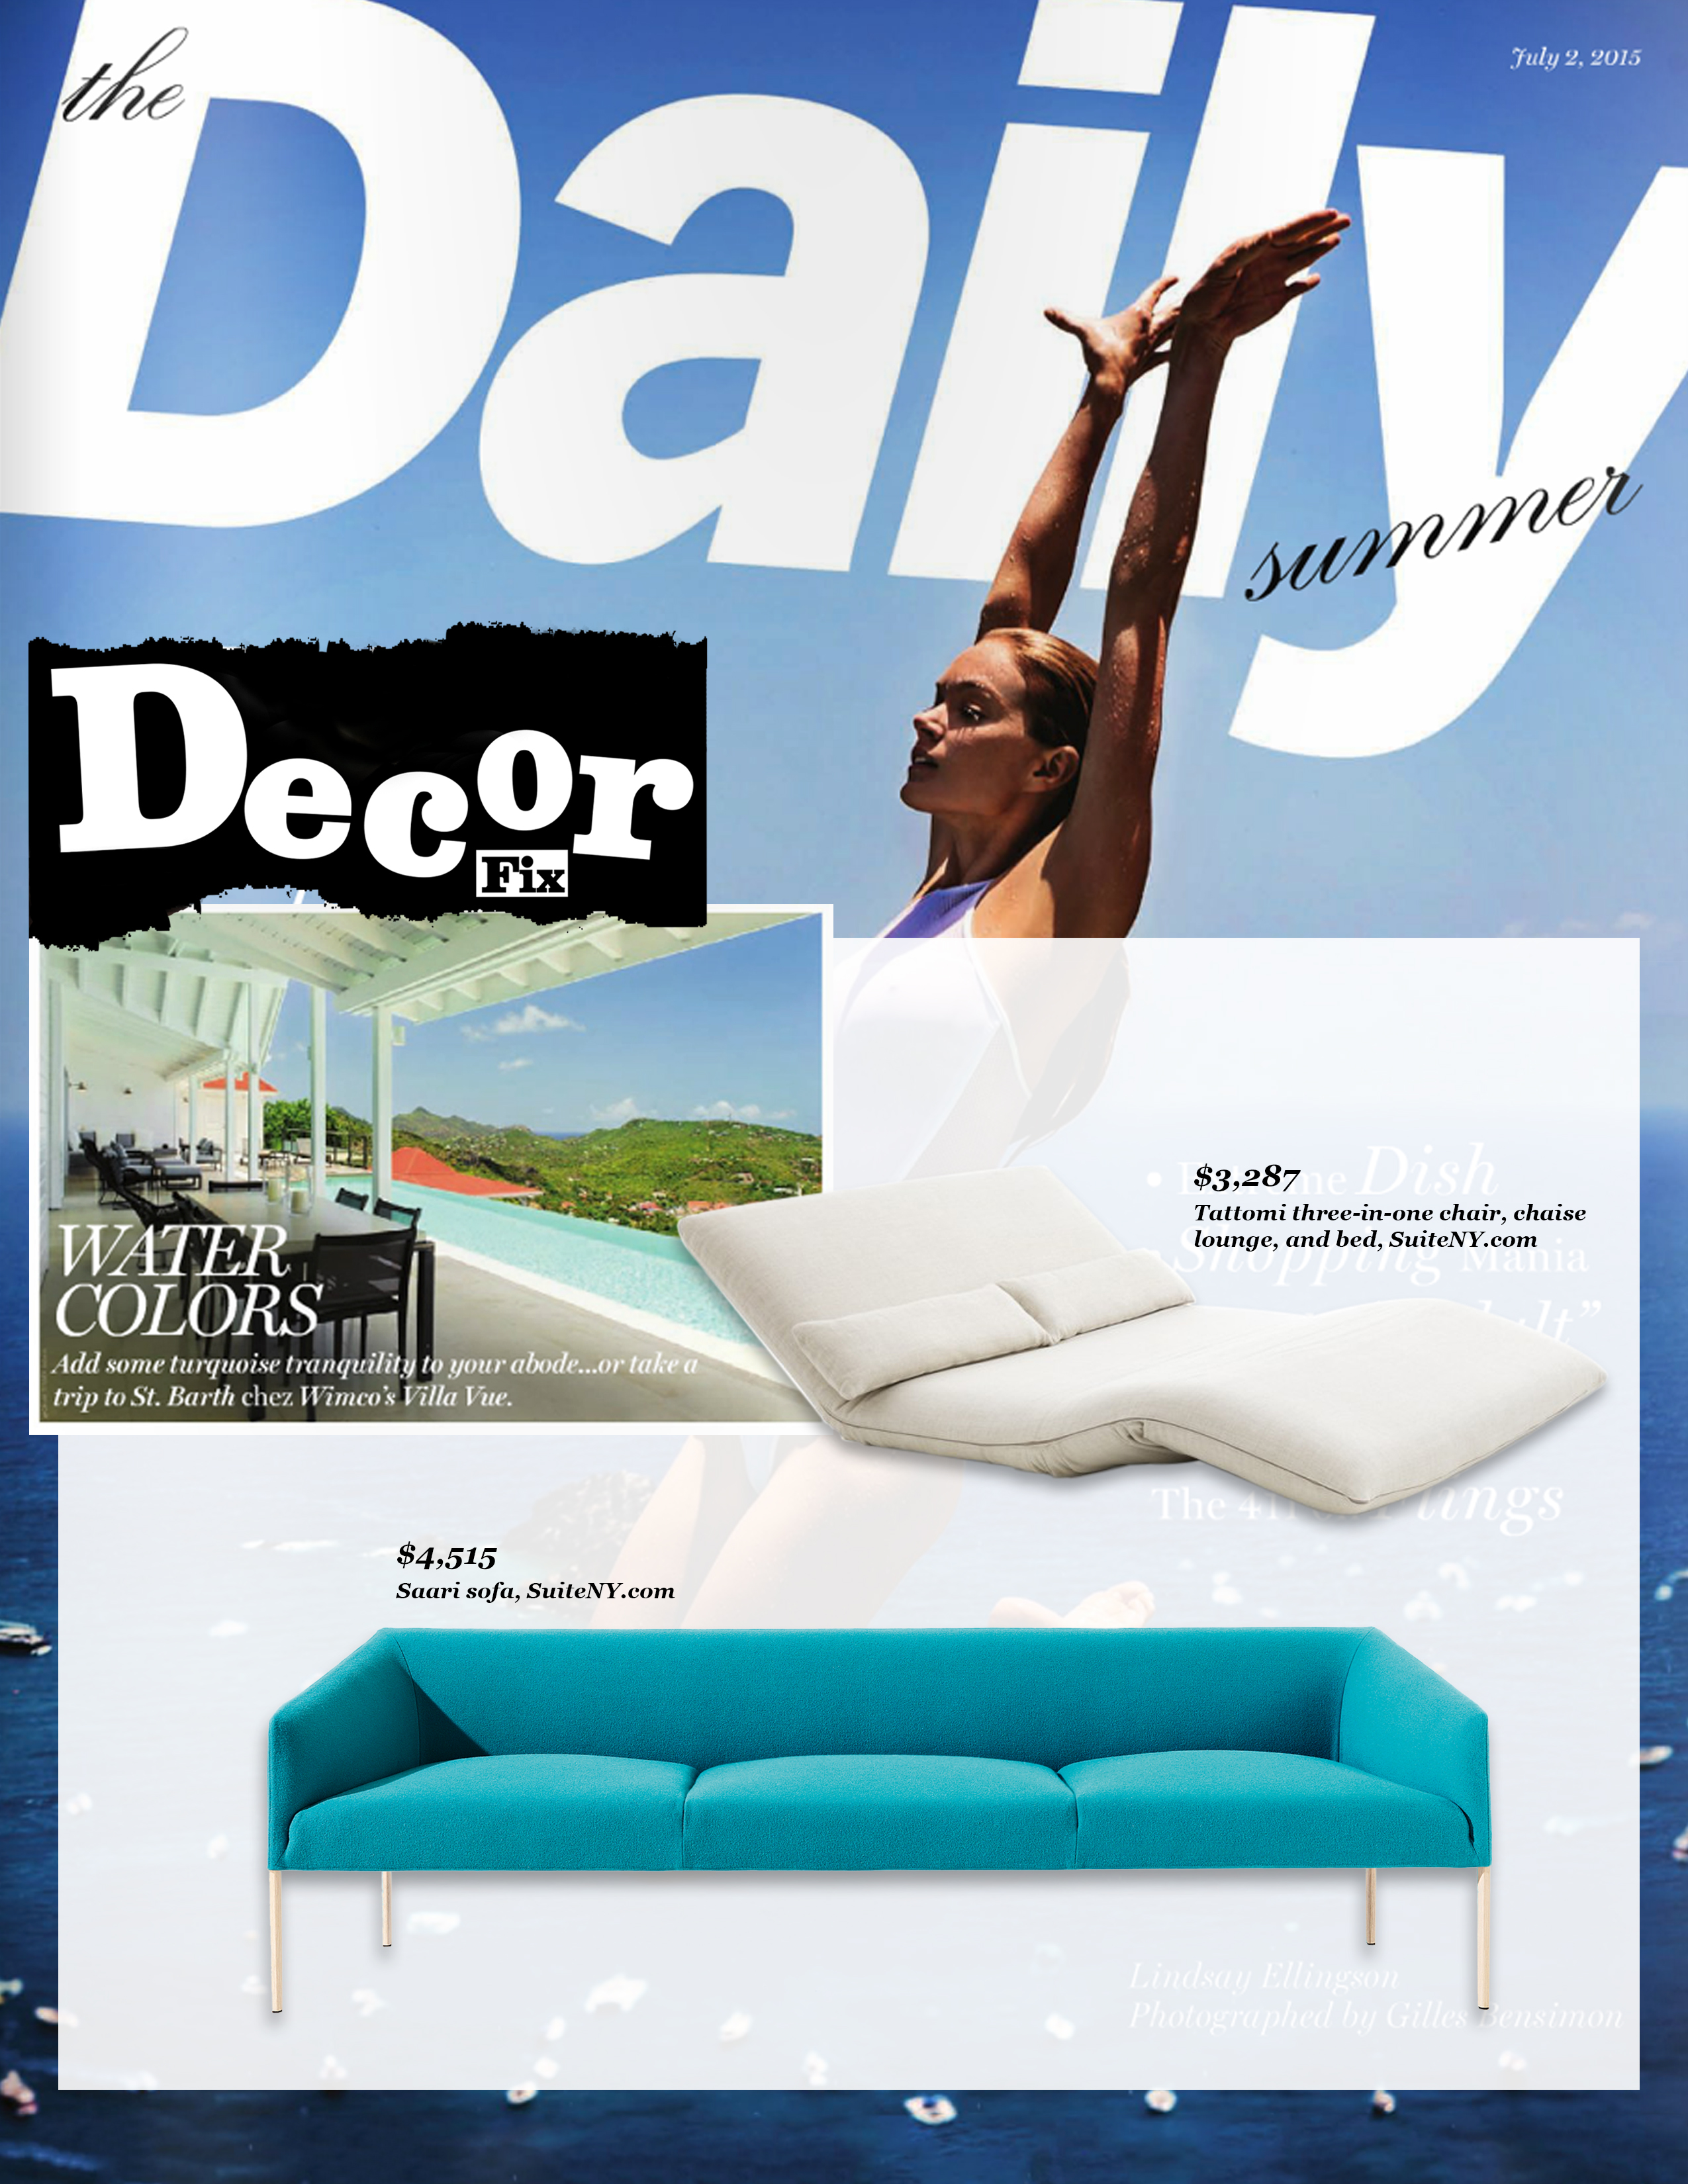 tattomi, three in one, bed, chaise, lounge, seat, de padova, jan armgardt, ingo maurer, designer italian furniture, upholstered lounge furniture, contemporary design, saari sofa collection, saari sofa, lievore altherr molina, lievore, altherr, molina, arper, arper usa, contract sofas, contract furniture, colorful lounge seats, daily front row, daily summer magazine, suite ny, suiteny, suite new york